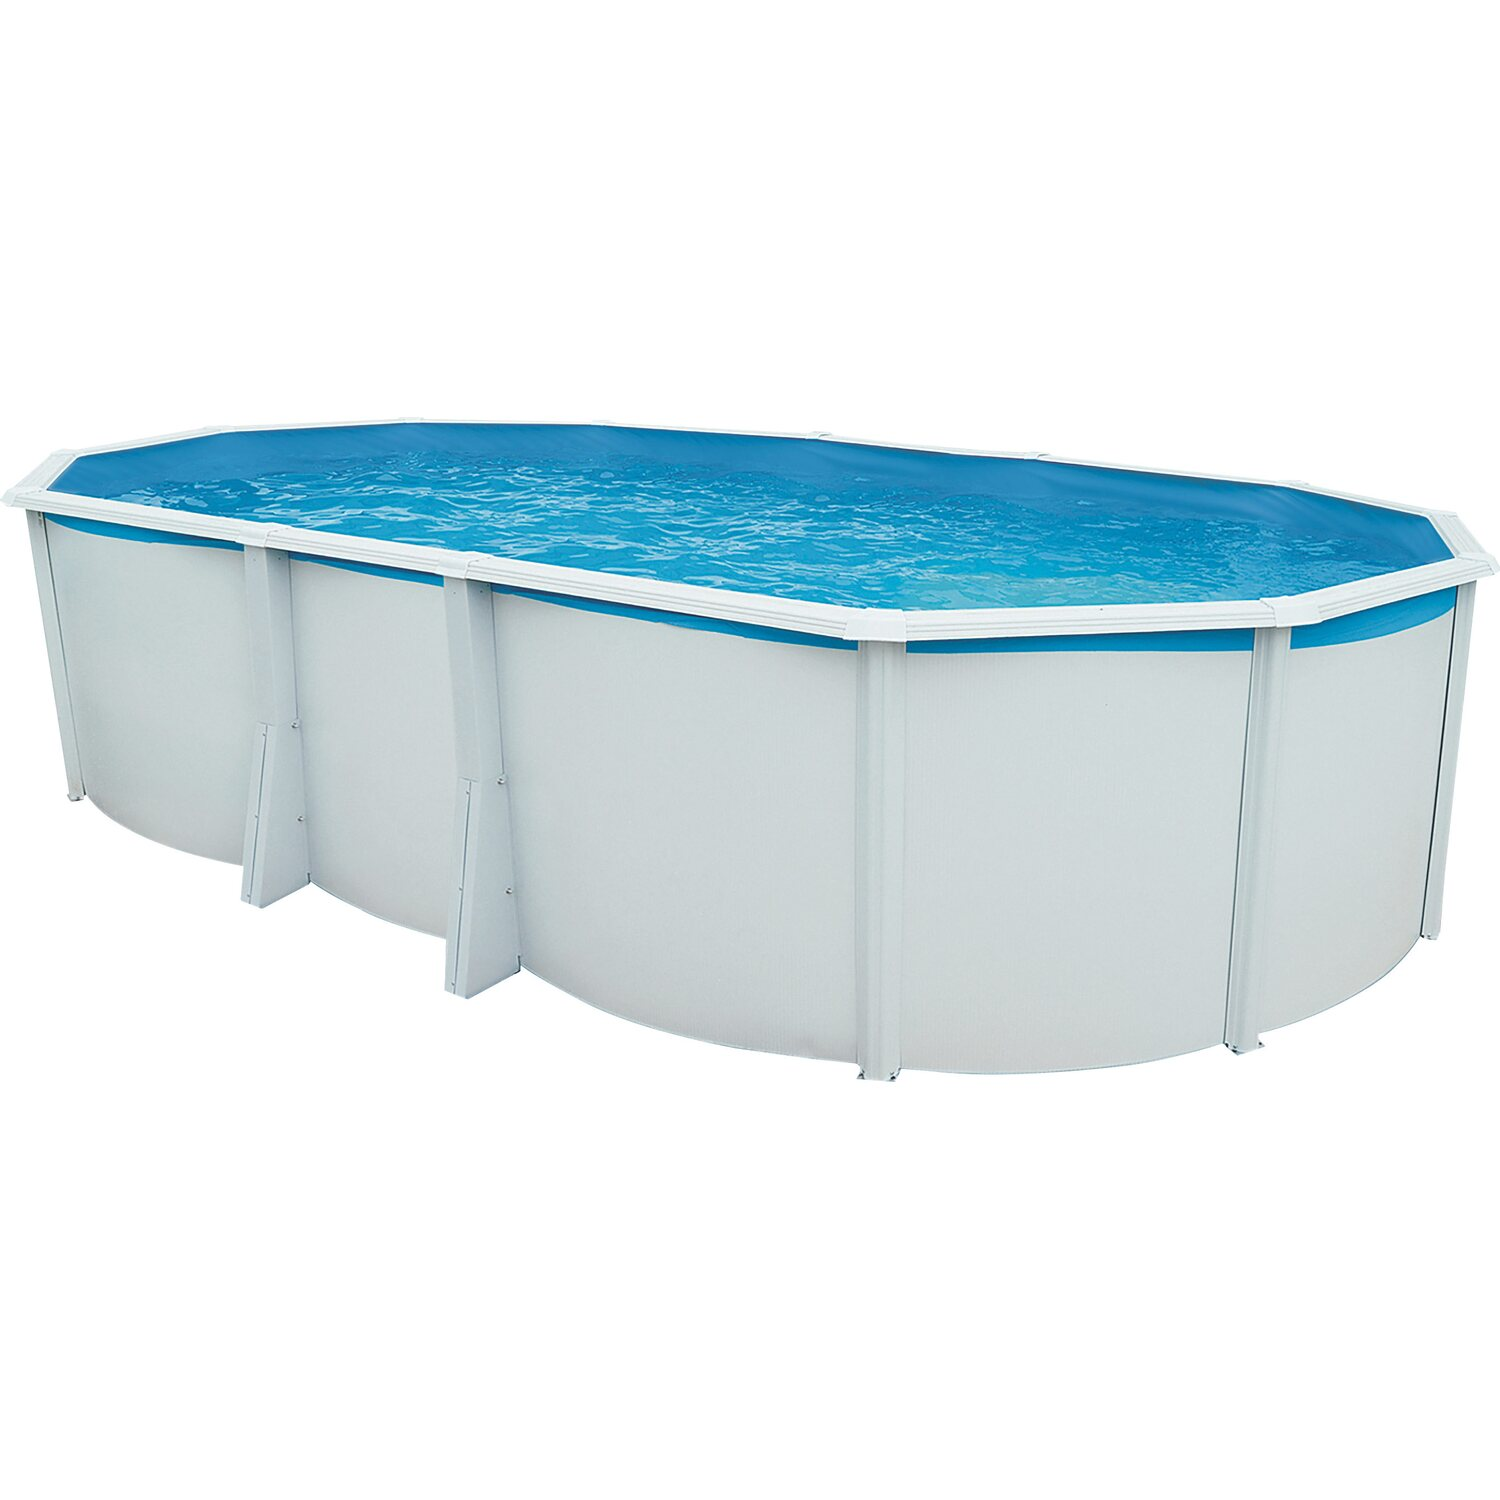 Steinbach stahlwand pool set highline 640 cm x 366 cm x for Stahlwandpool bei obi